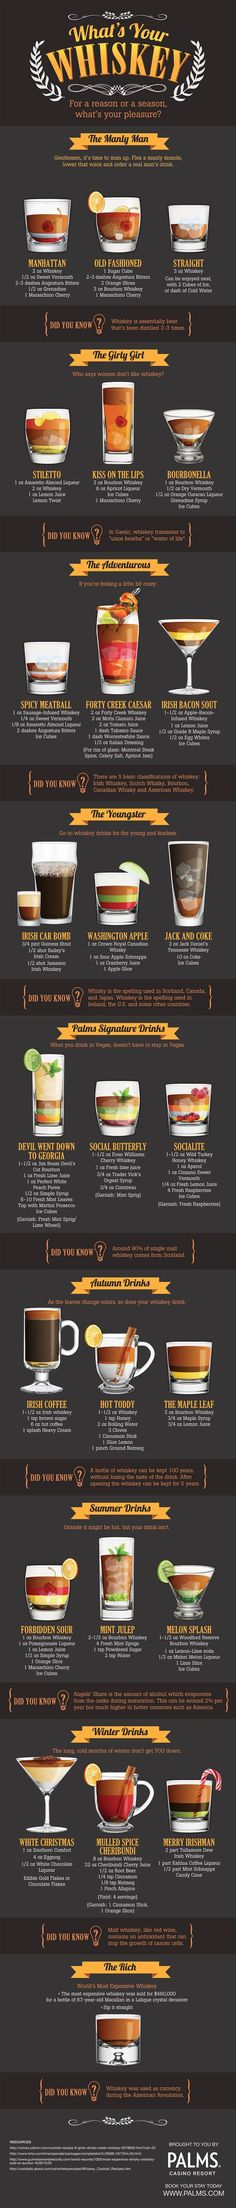 What's Your Whiskey? #infographic #Whiskey